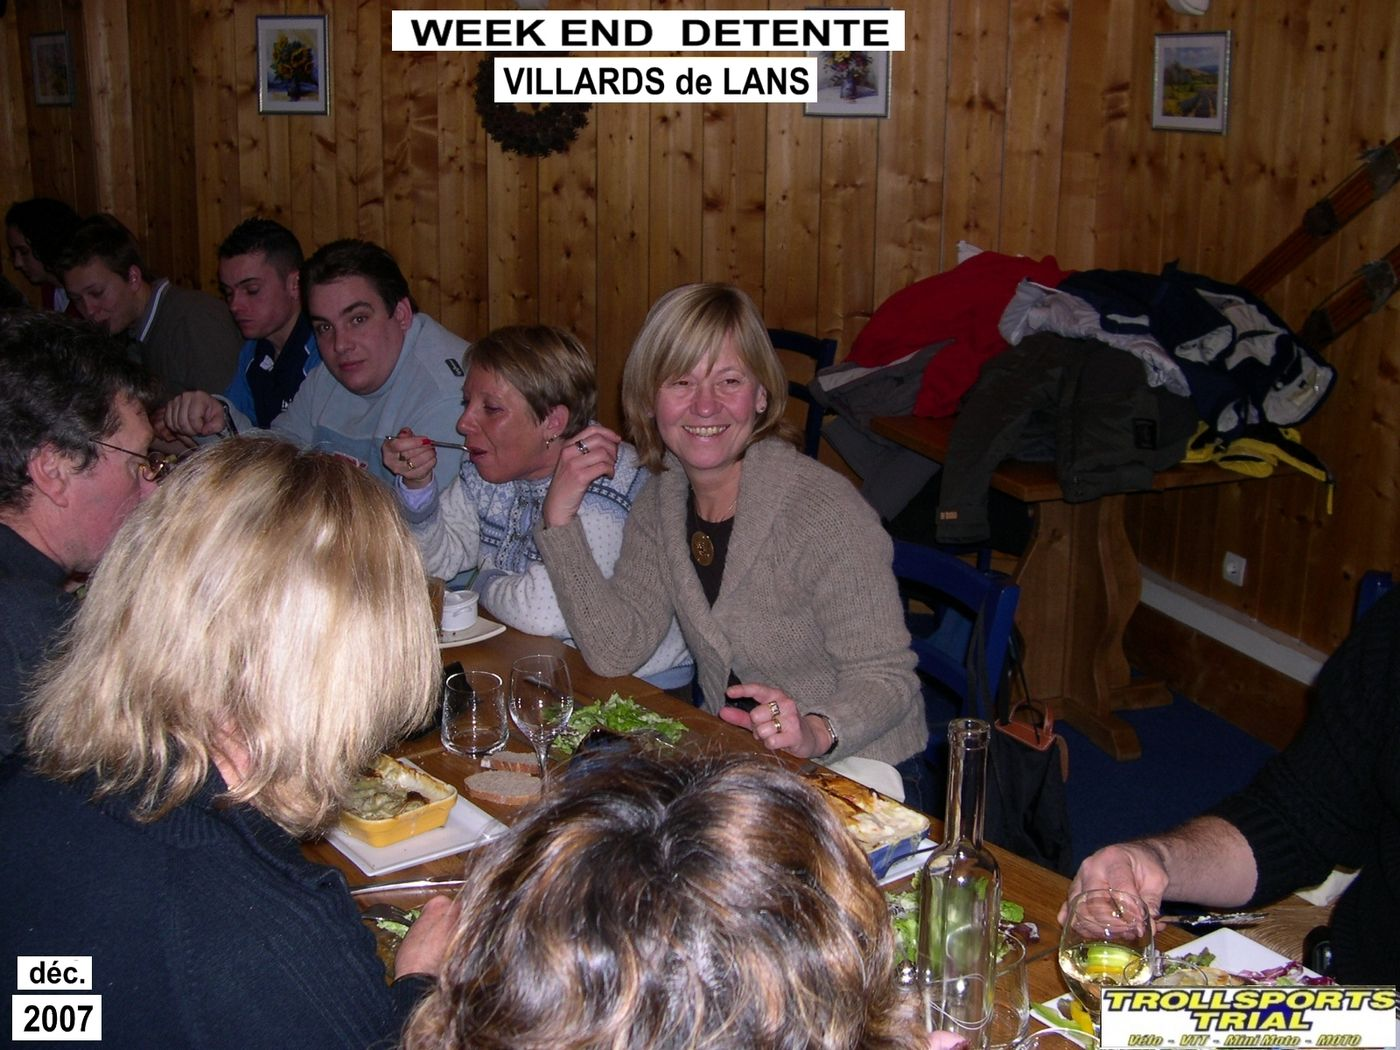 week_end_detente/img/2007 12 villards 3.jpg